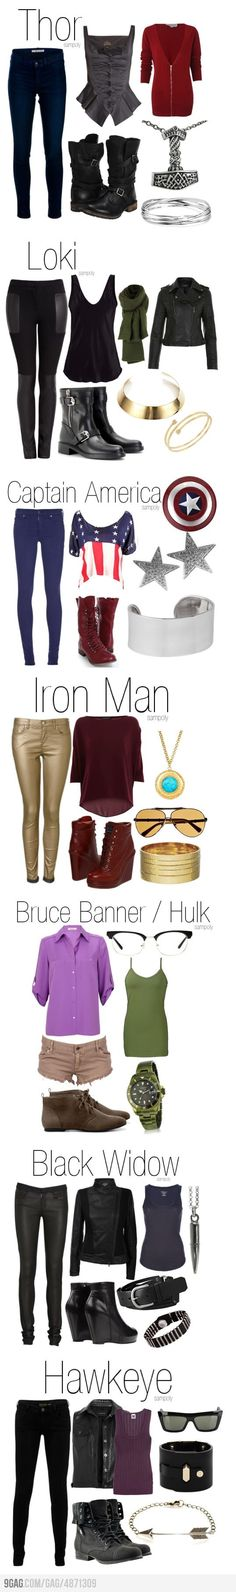 Avengers fashion #geek